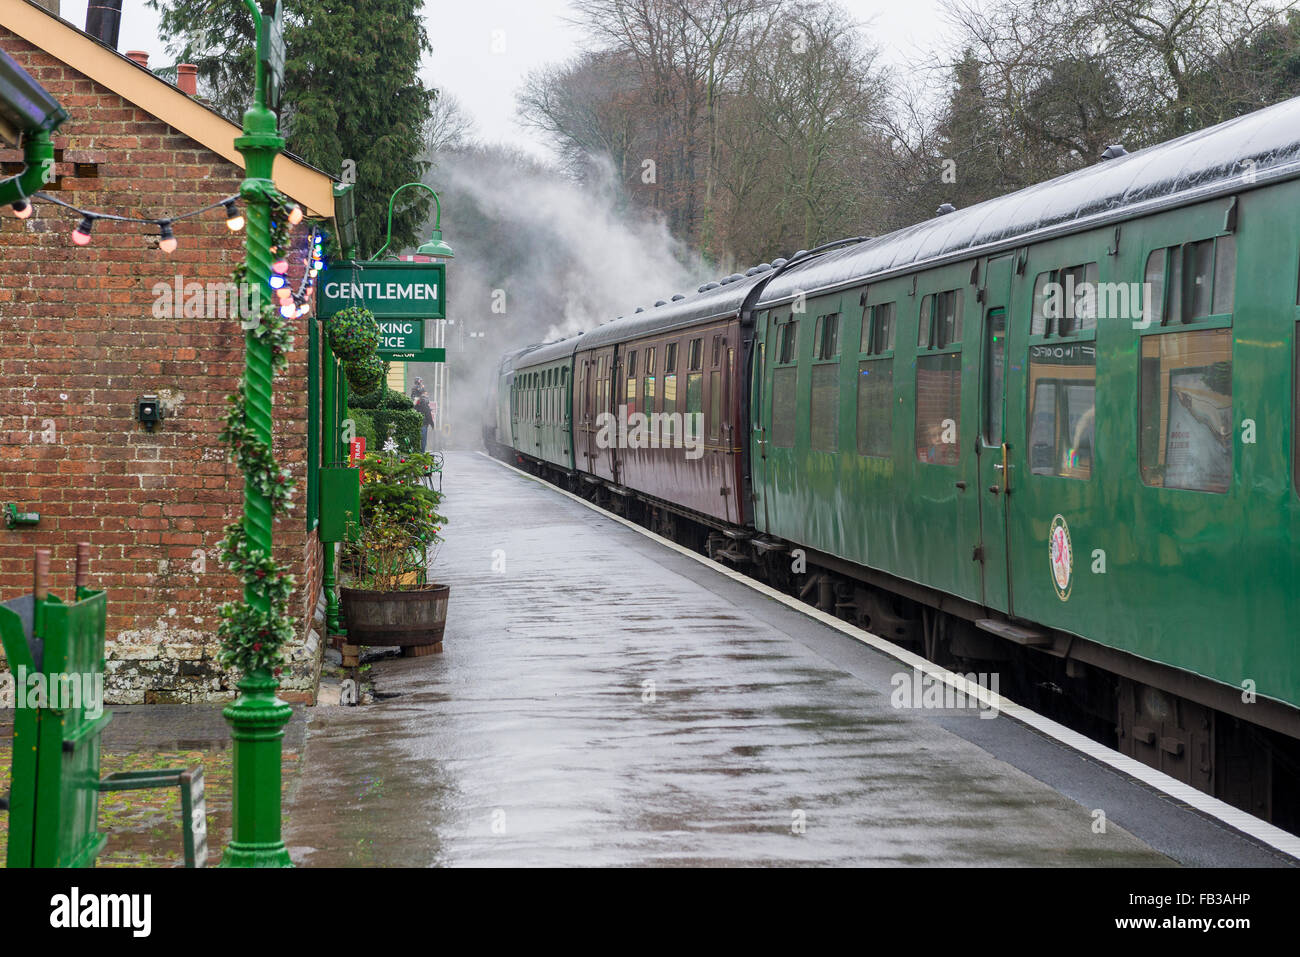 steam train carriages waiting at railway platform - Stock Image